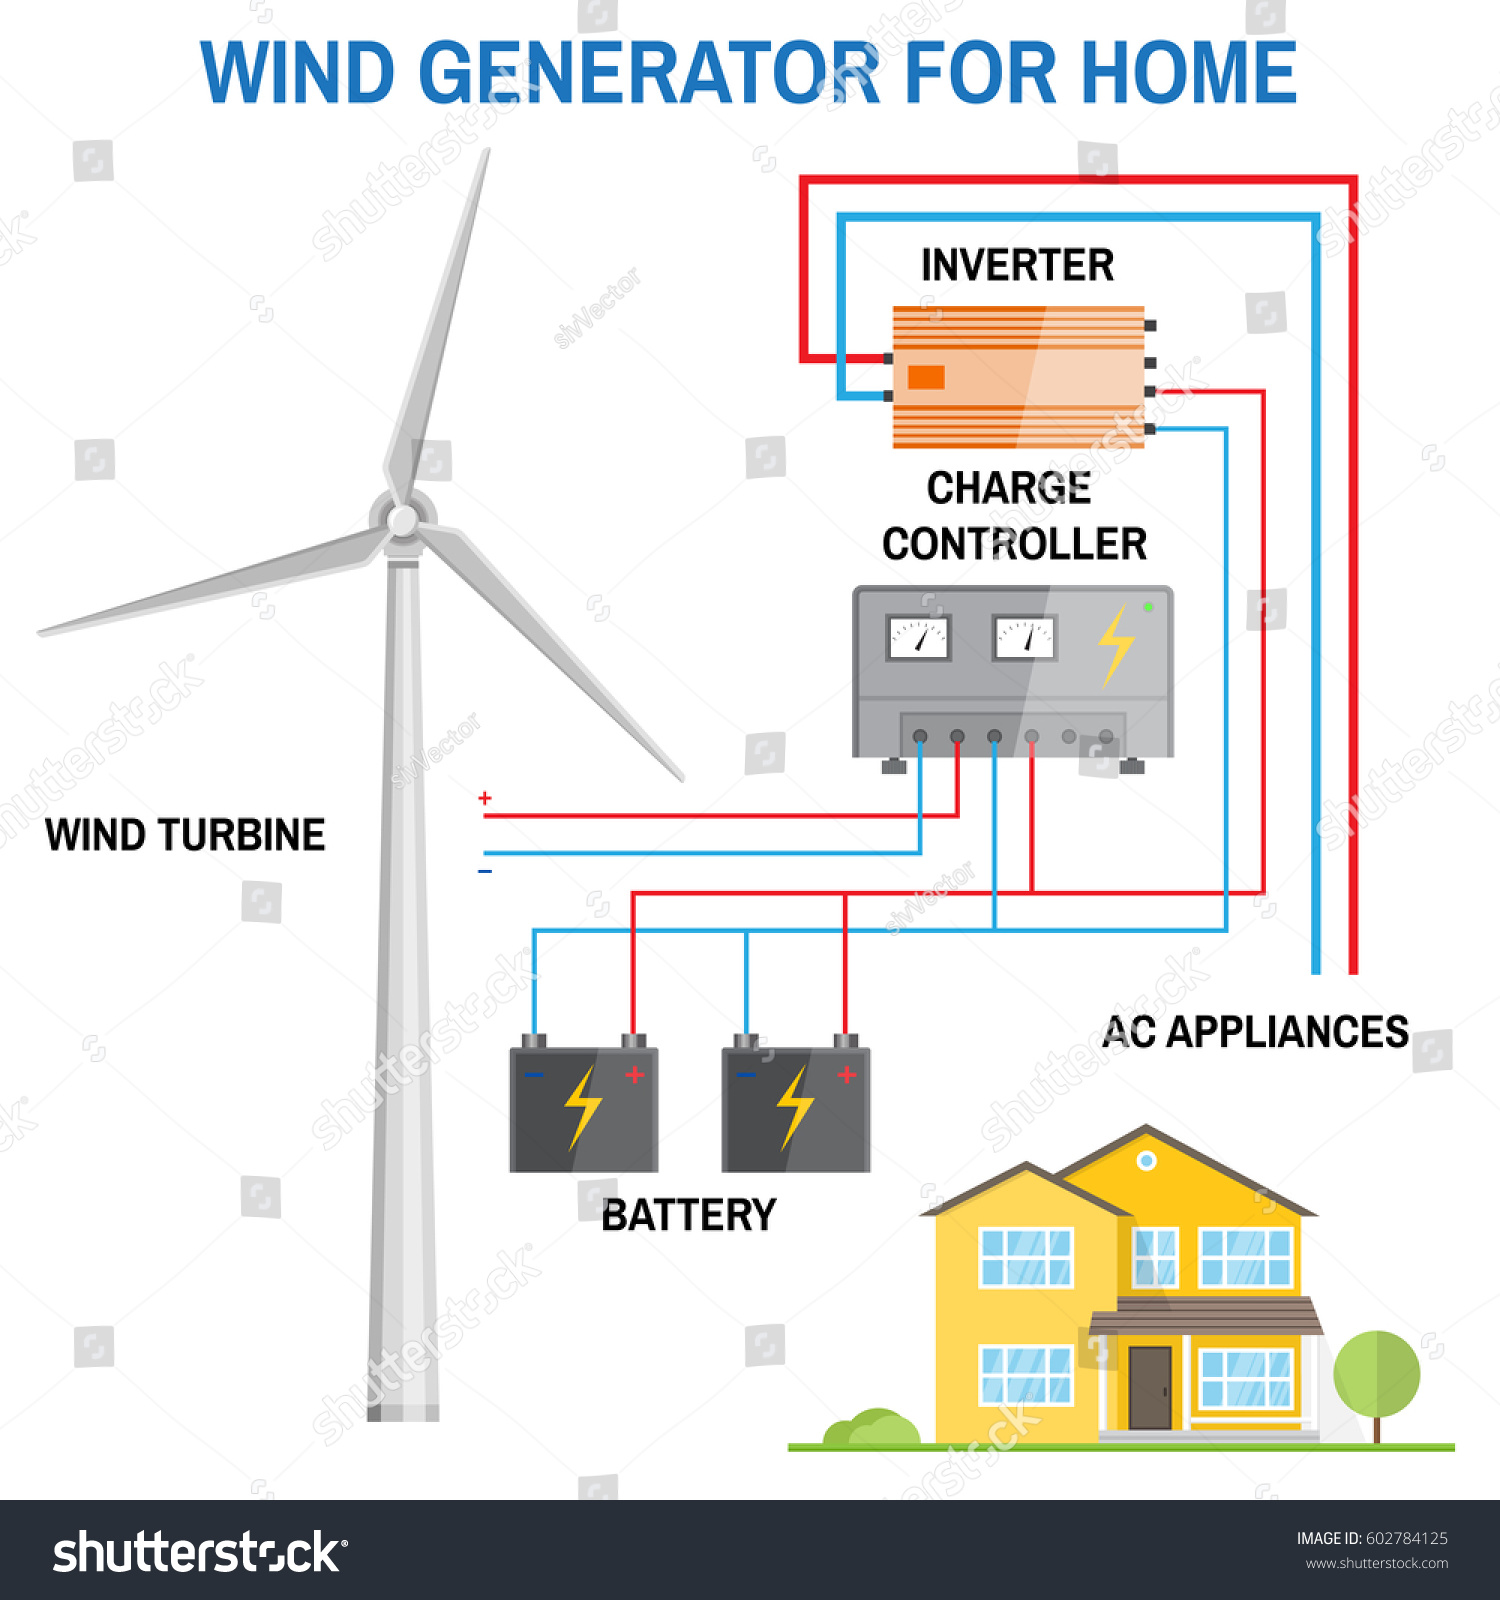 Wind Generator Home Renewable Energy Concept Stock Vector